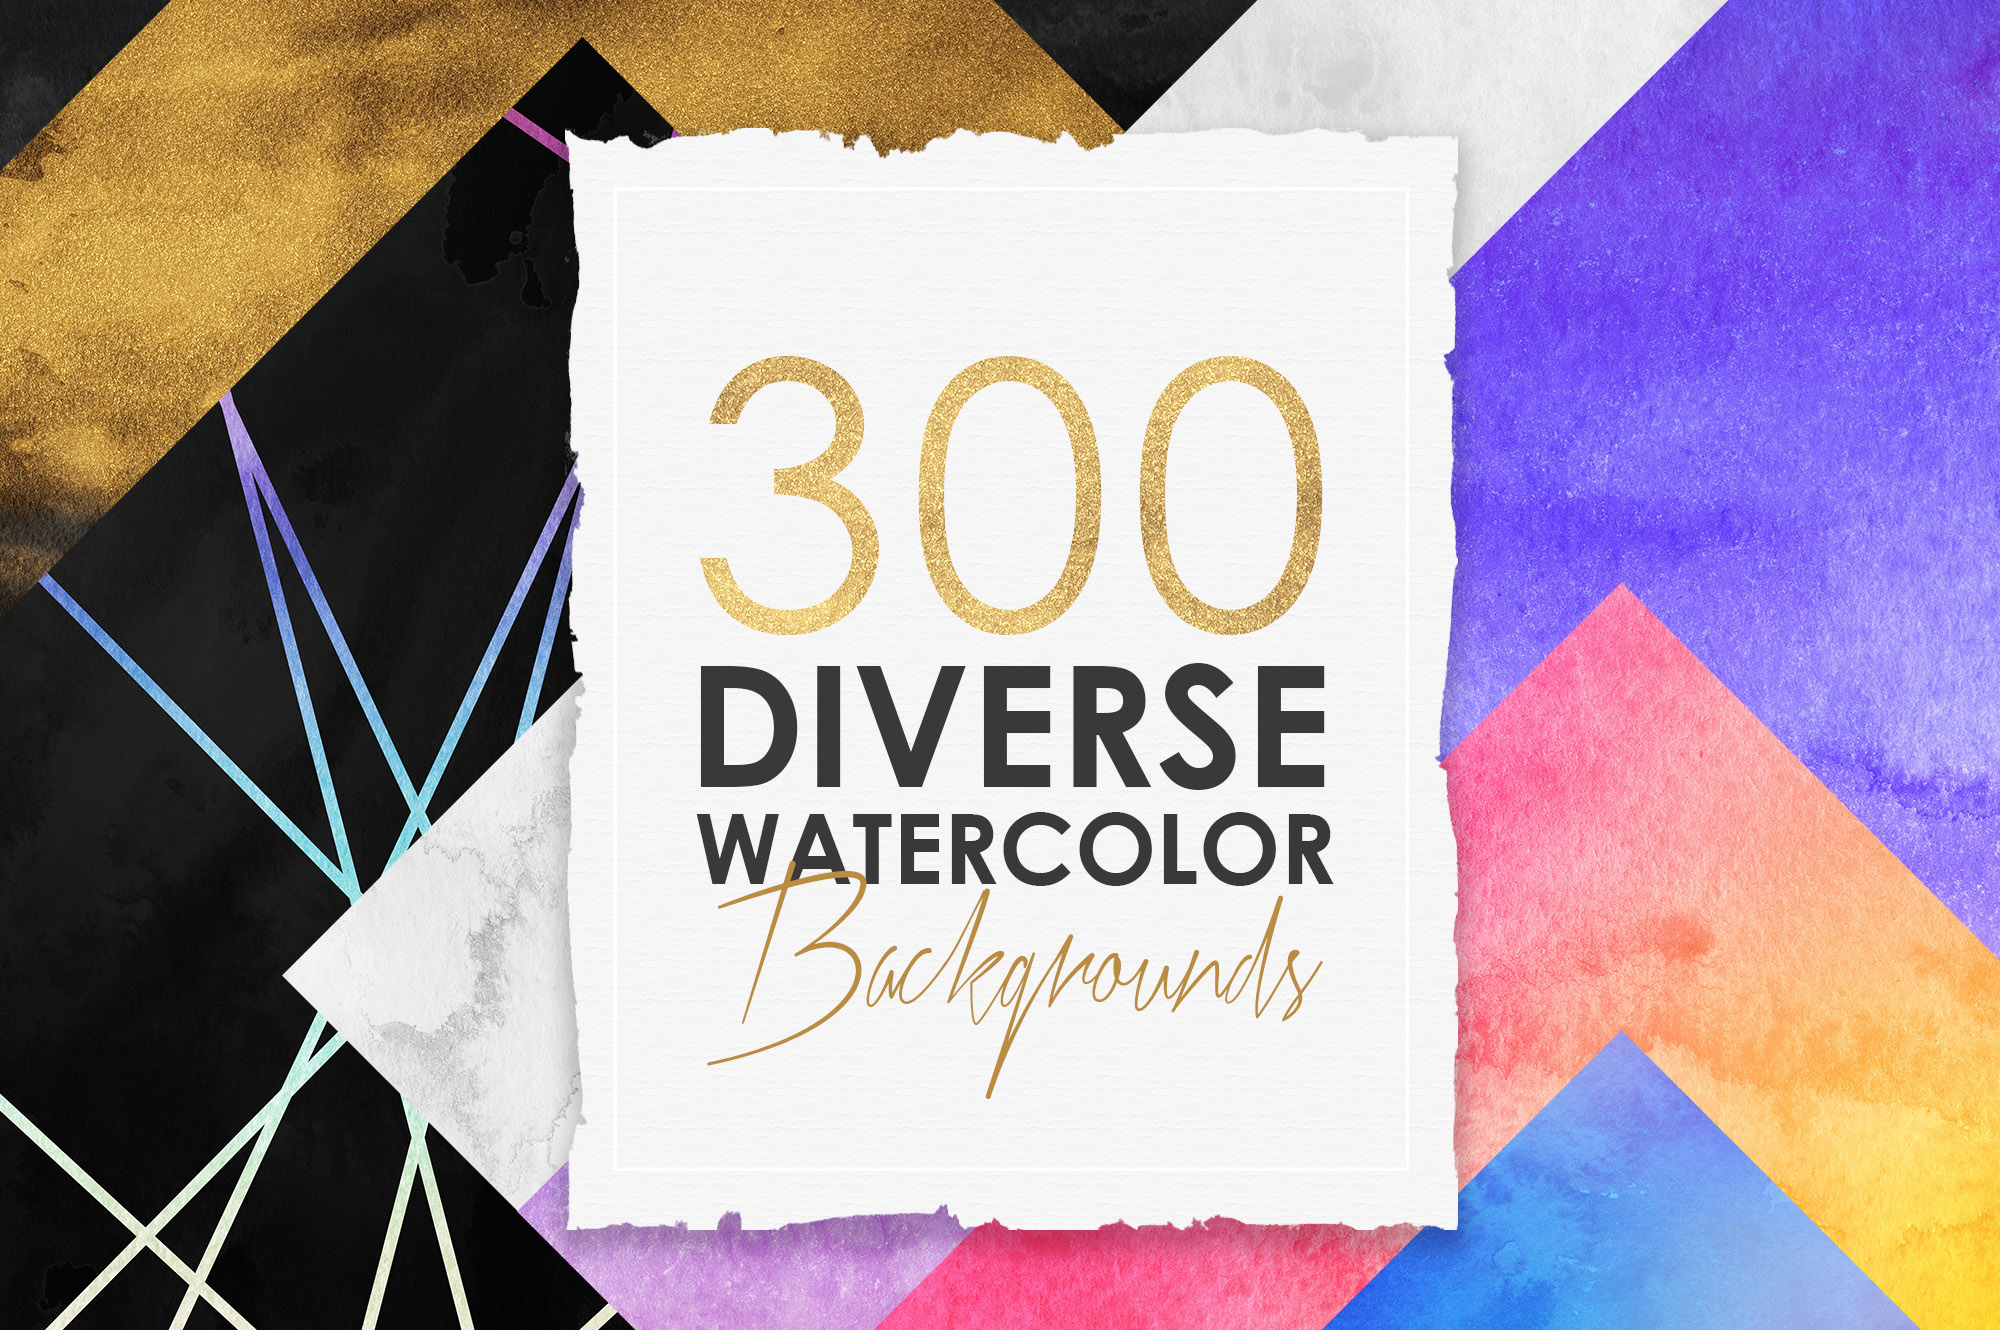 300 Diverse Watercolor Backgrounds example image 1